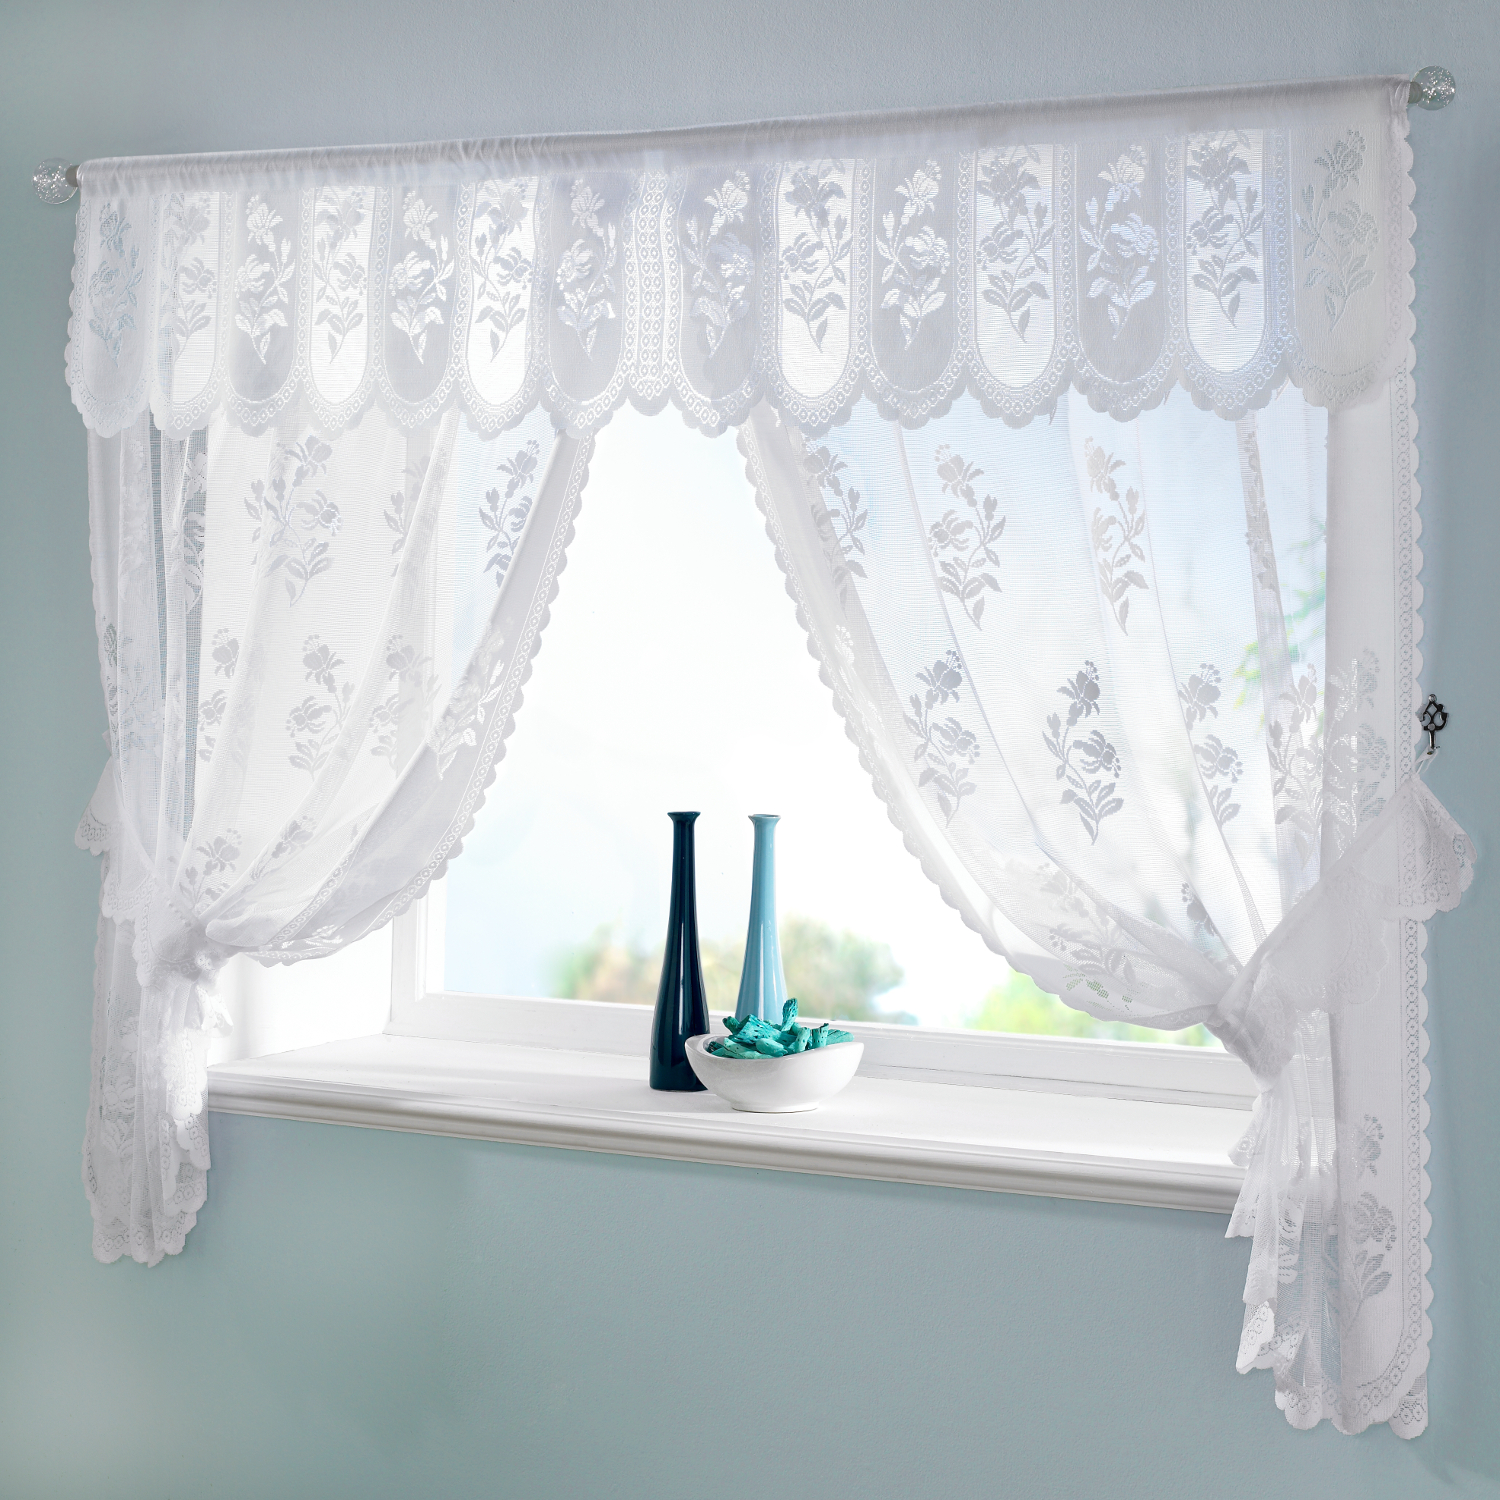 Jacquard Lace Net Curtain Window Set Floral Ready Made